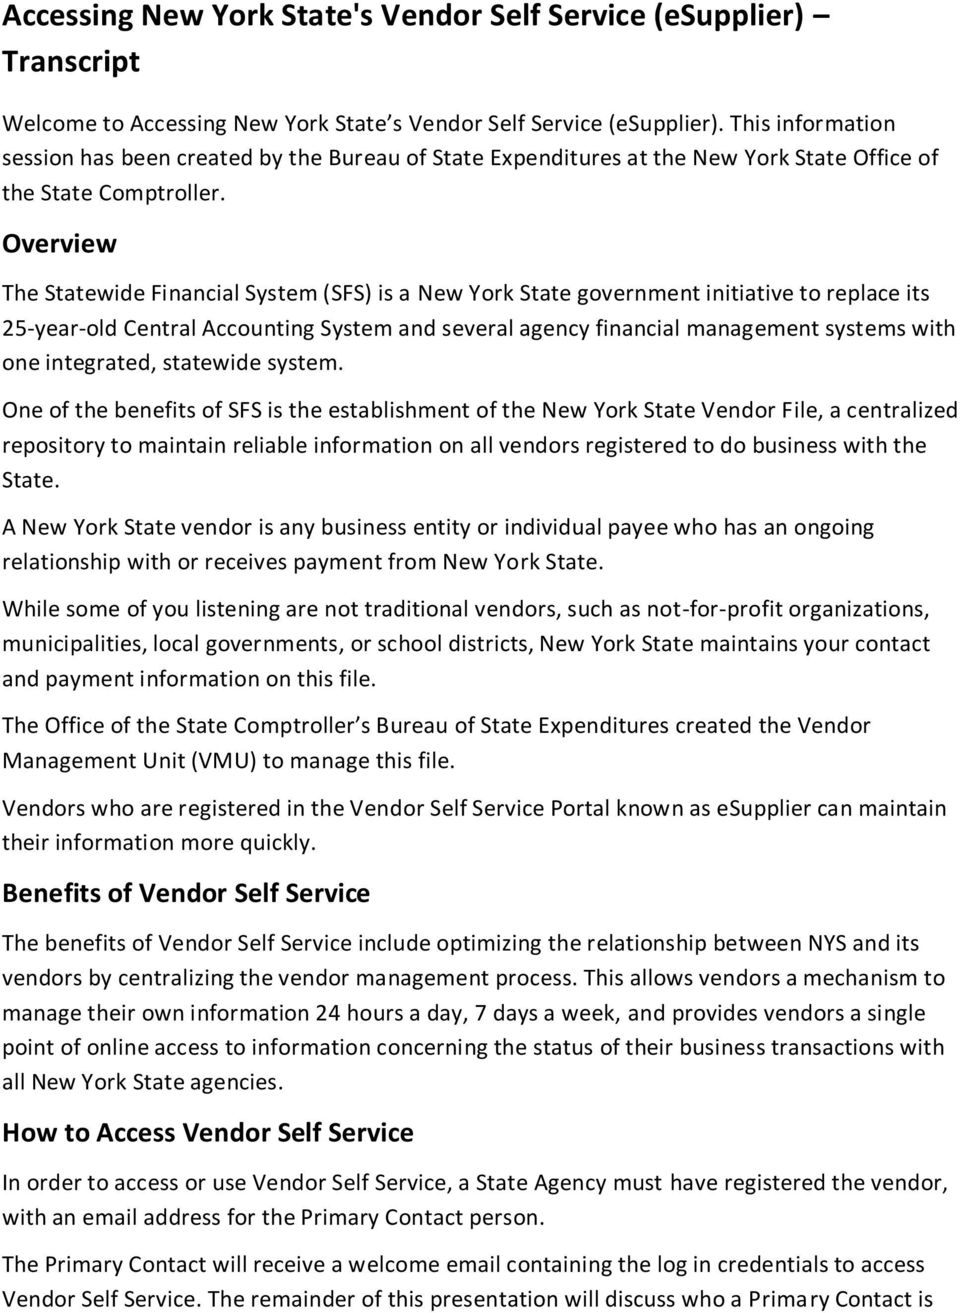 Overview The Statewide Financial System (SFS) is a New York State government initiative to replace its 25-year-old Central Accounting System and several agency financial management systems with one